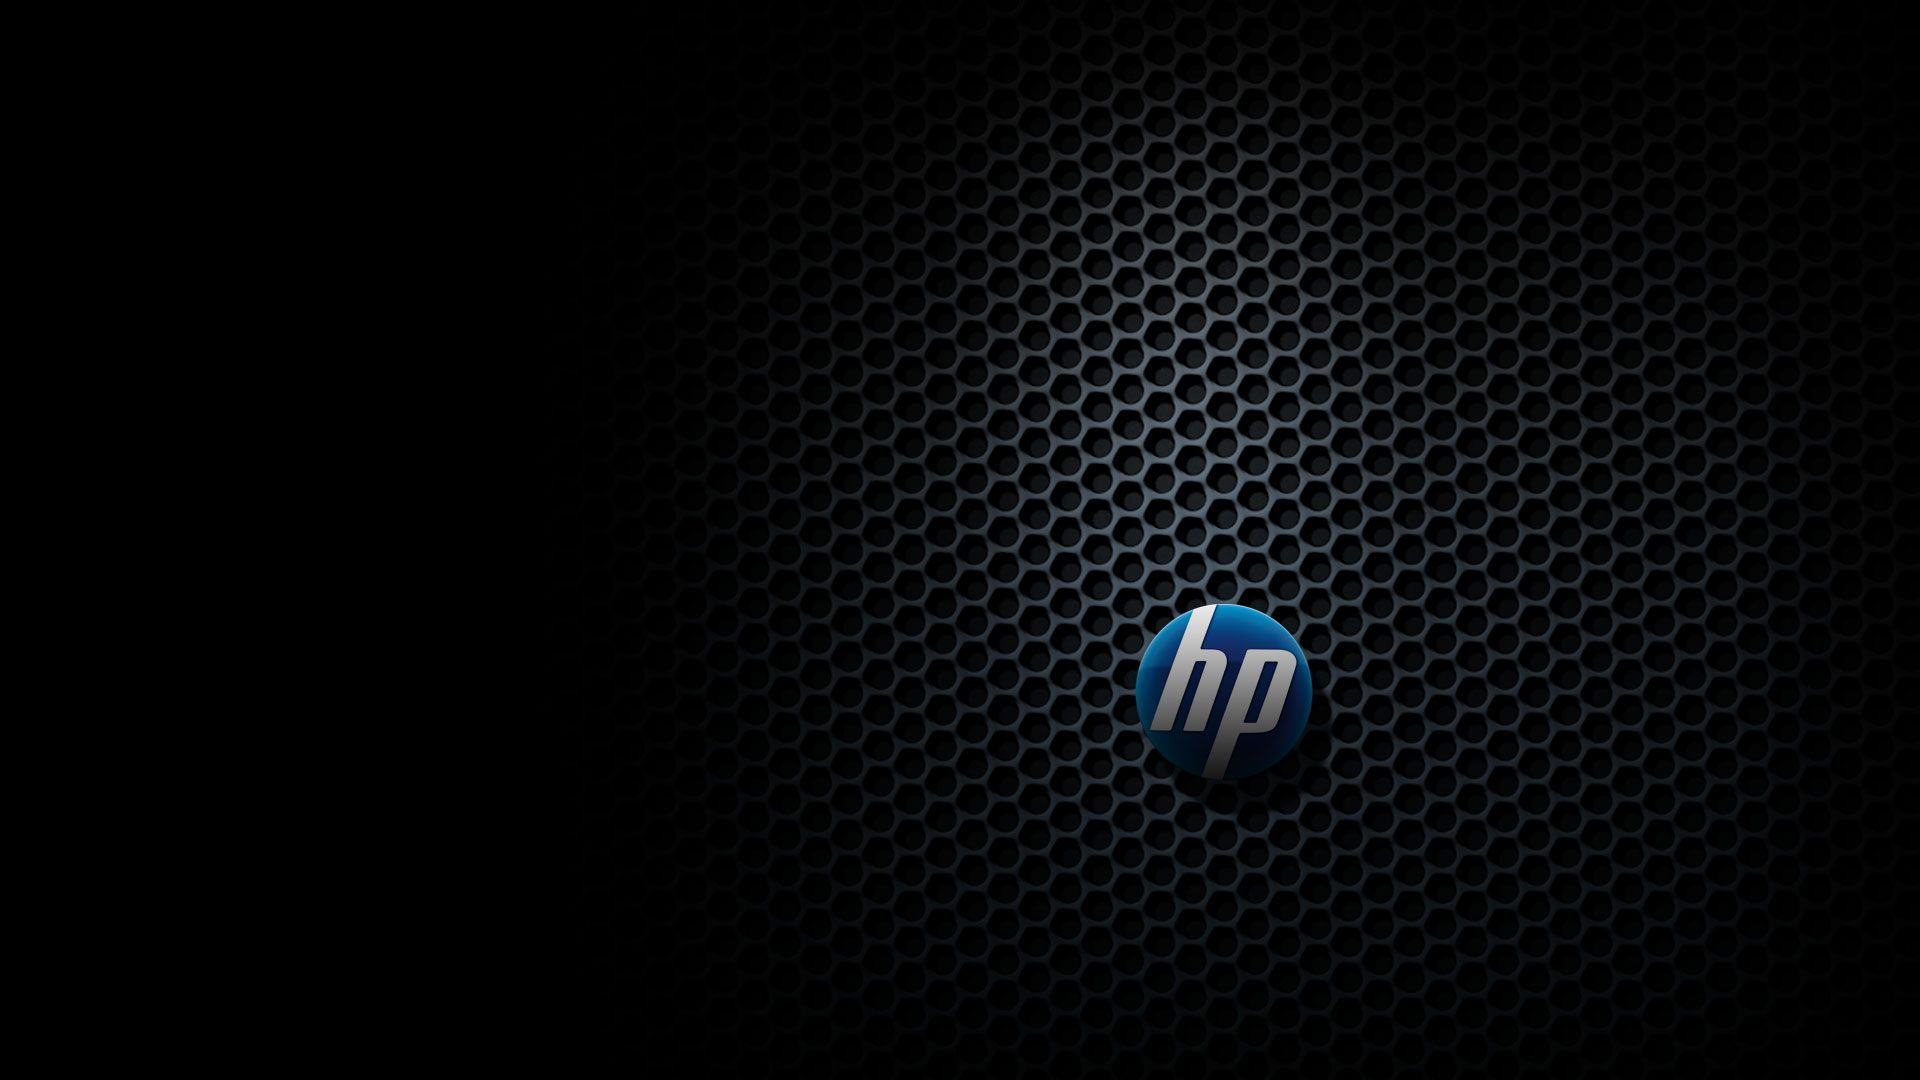 1920x1080 - Wallpapers for HP Envy 26